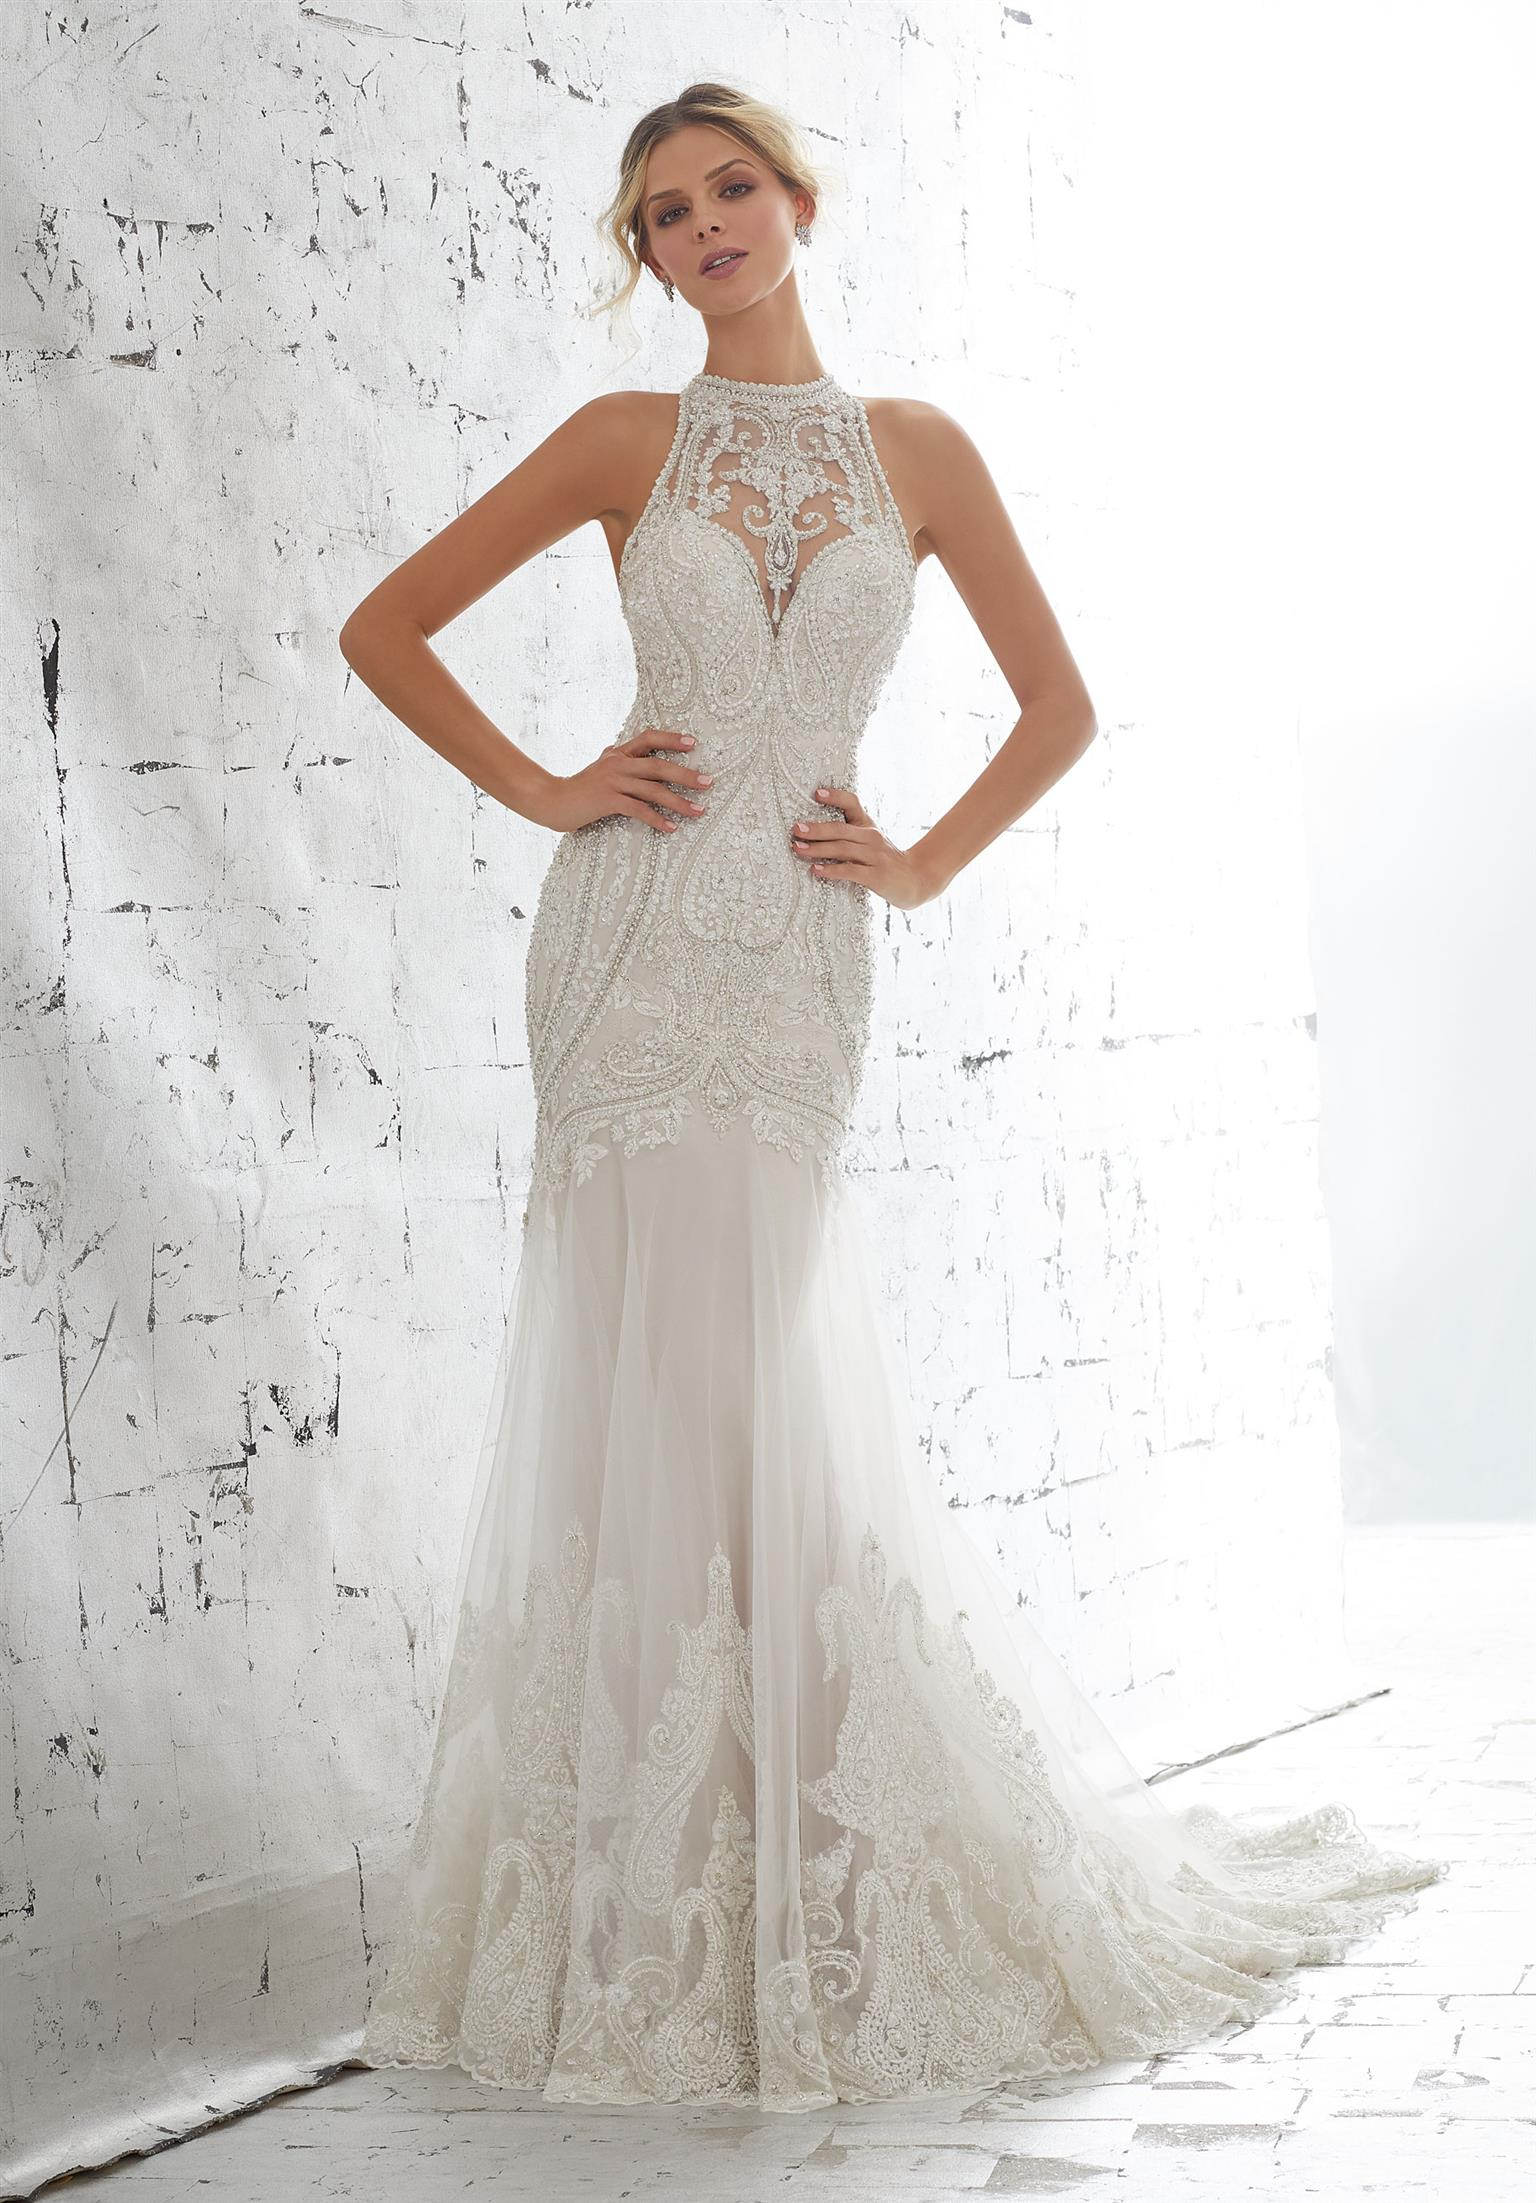 Wholesalers and importers of international designer wedding gowns